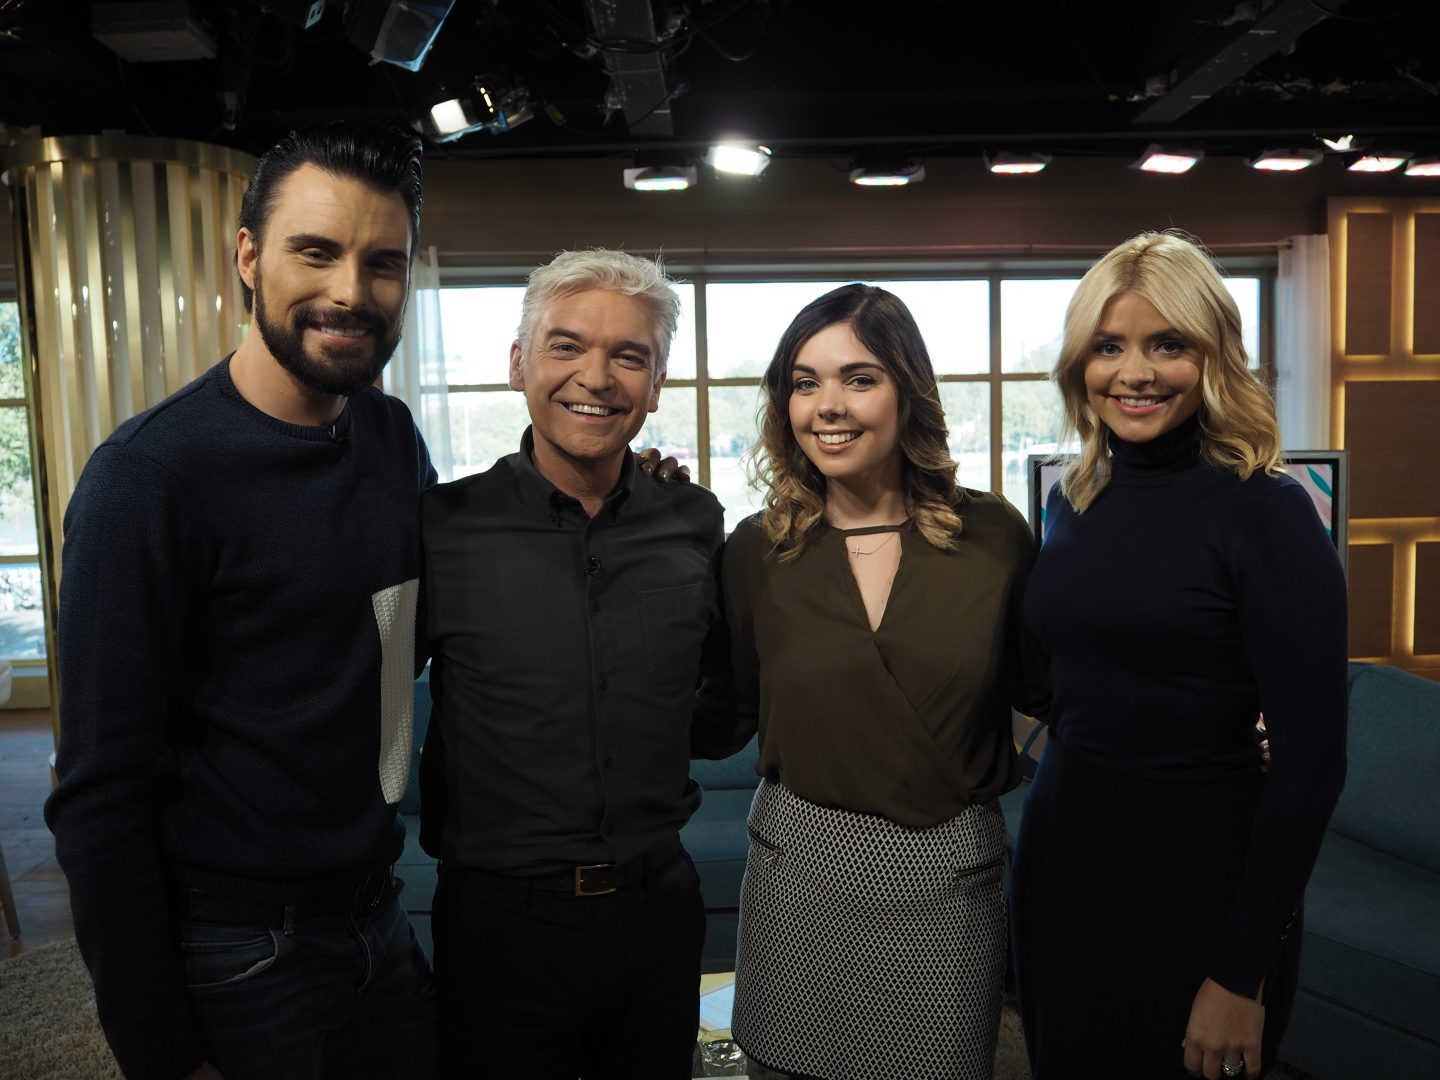 Appearing On This Morning – A Dream Come True